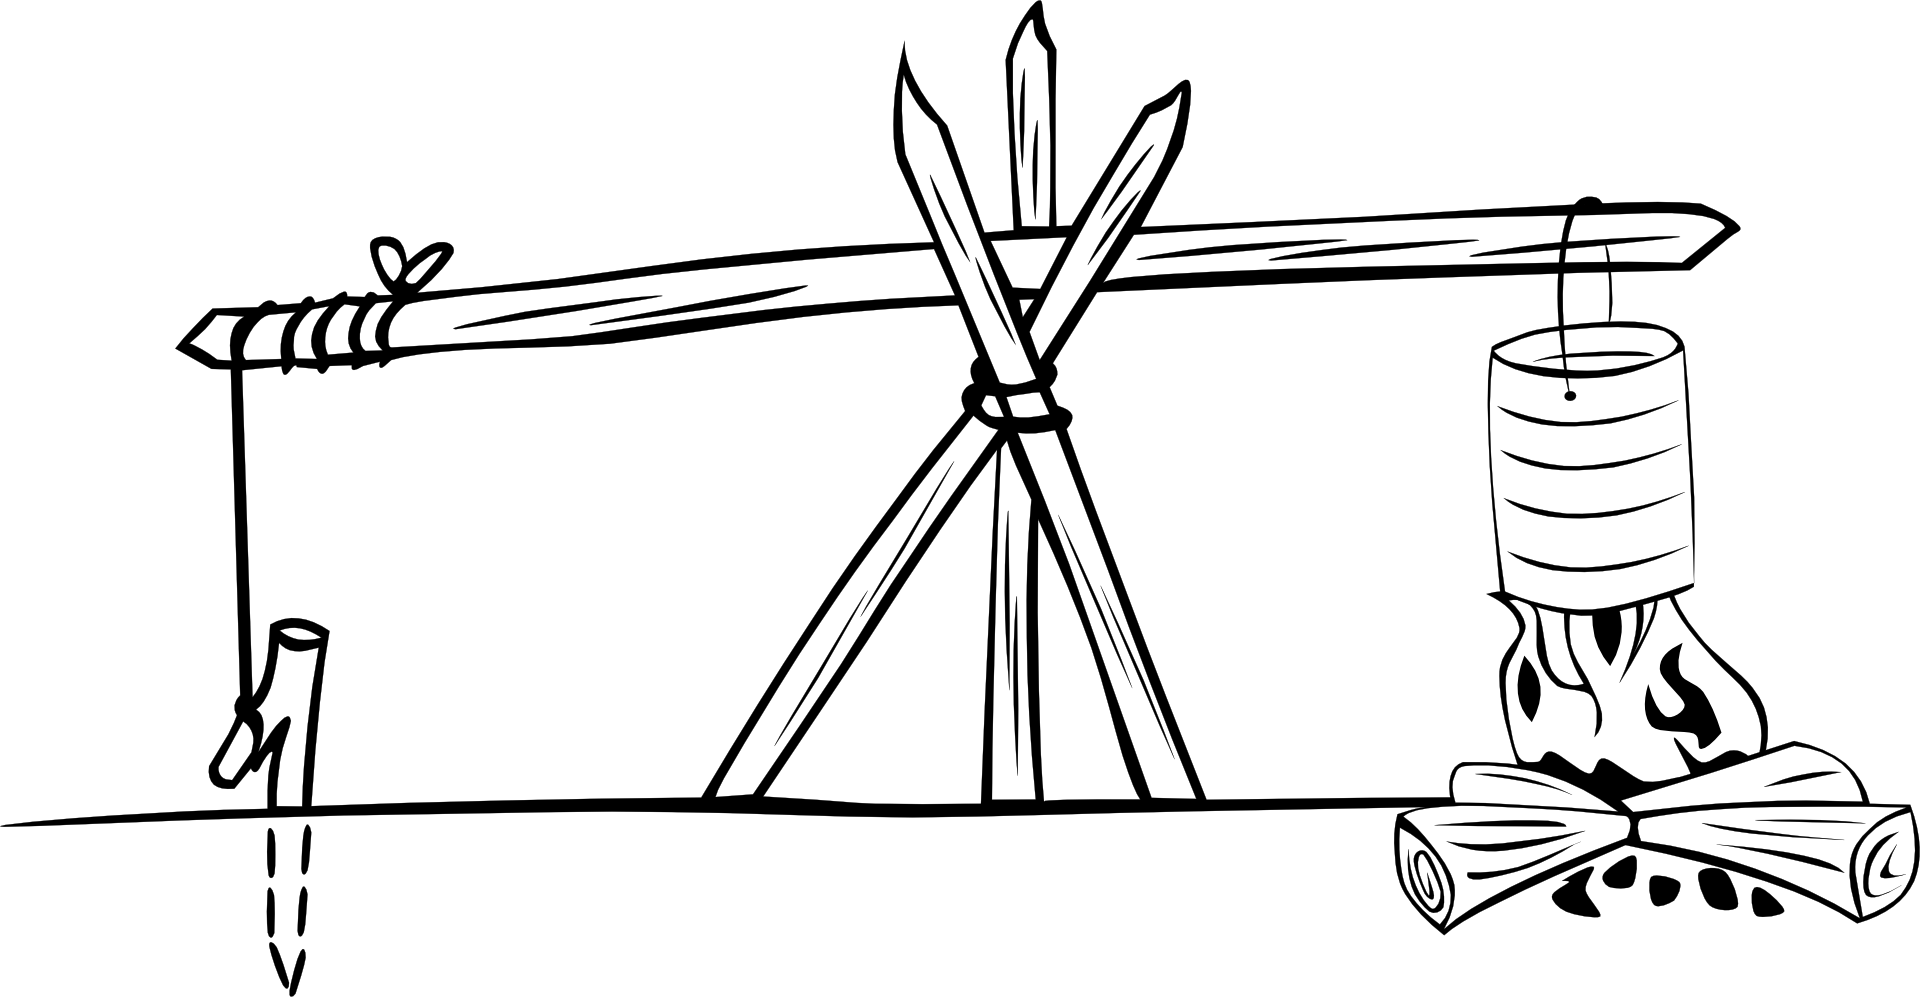 Campfire Tripod Black And White Vector Sketch Free Image